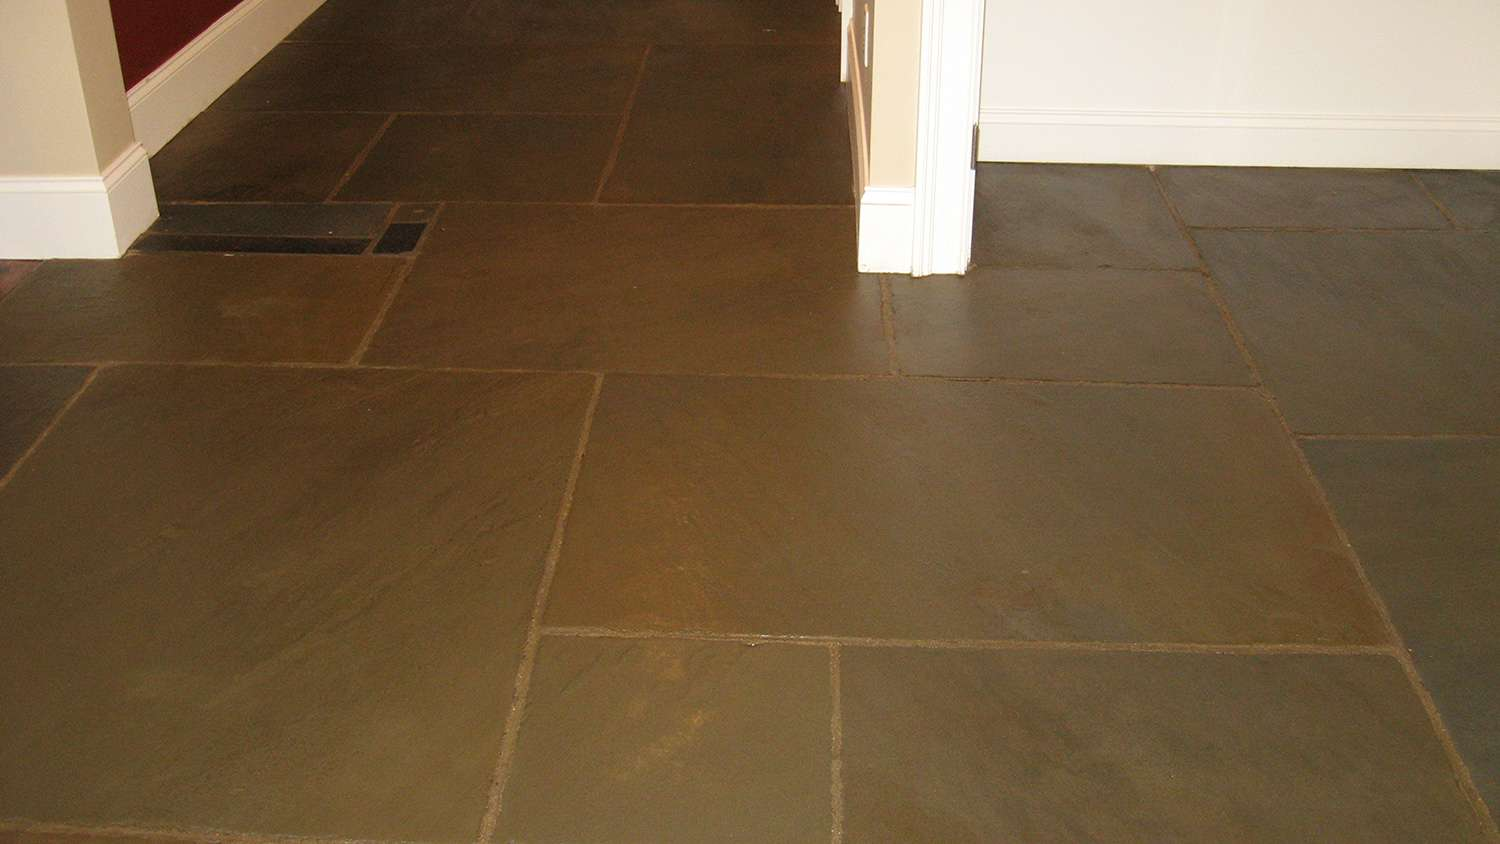 Stone Floor Stripping And Sealing Specialized Floor Care Services